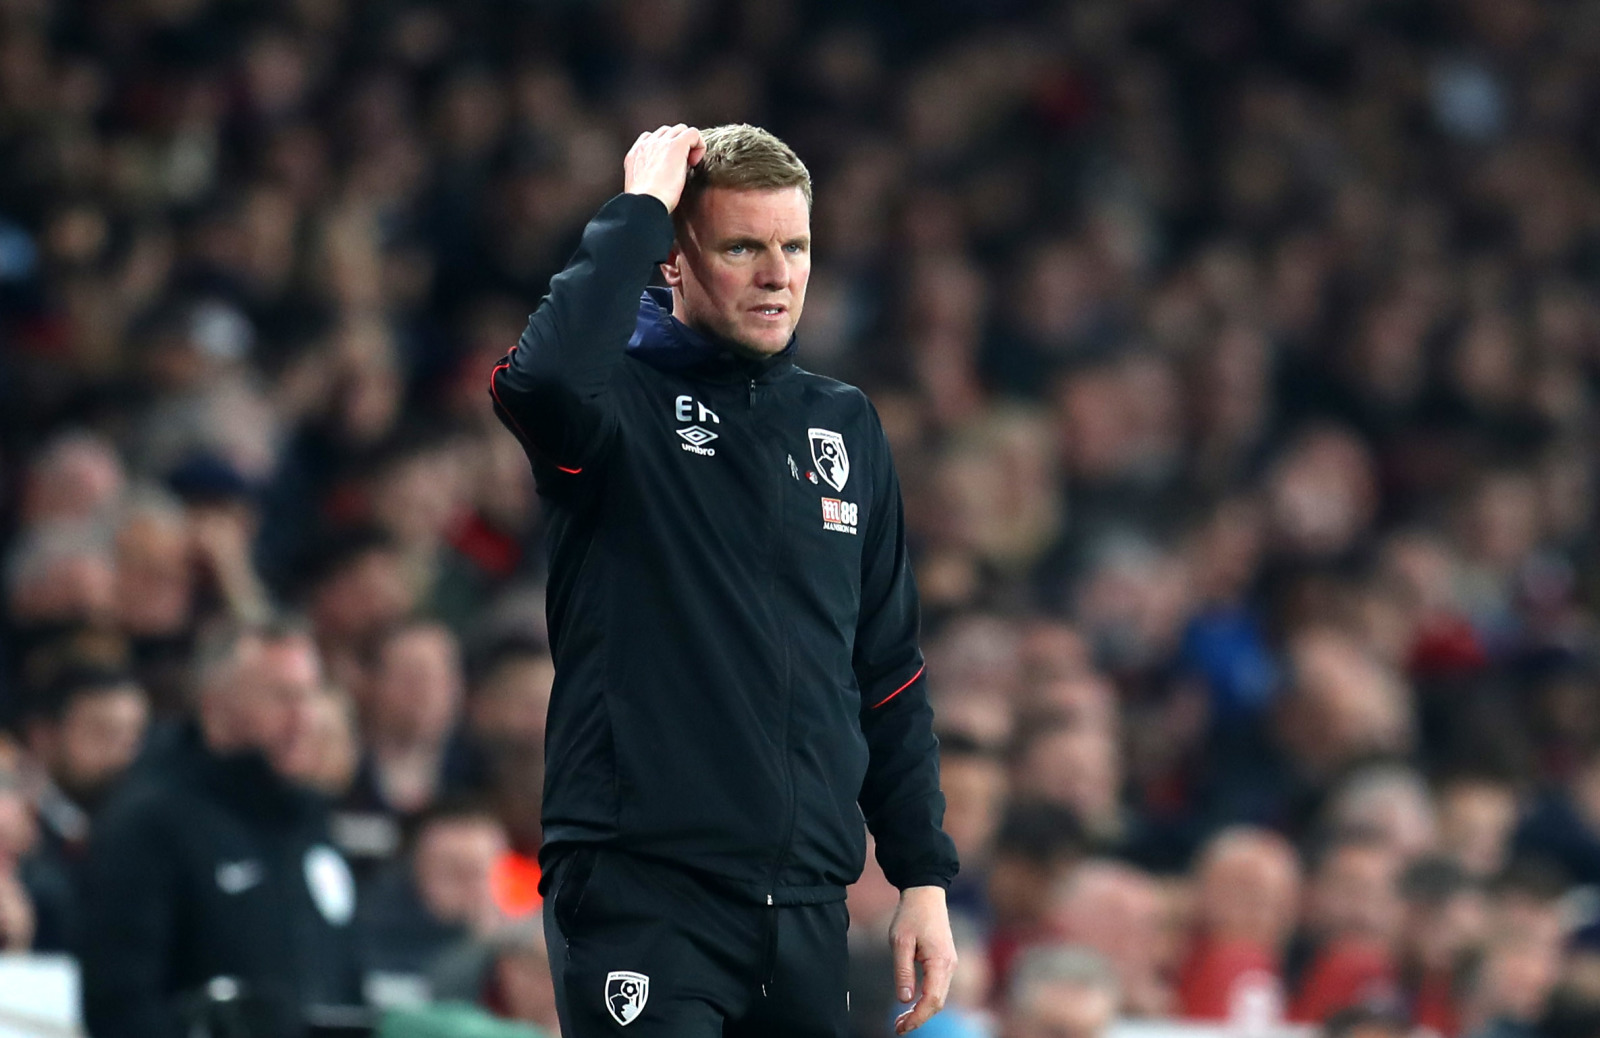 Eddie Howe Has Overstayed His Welcome At Bournemouth